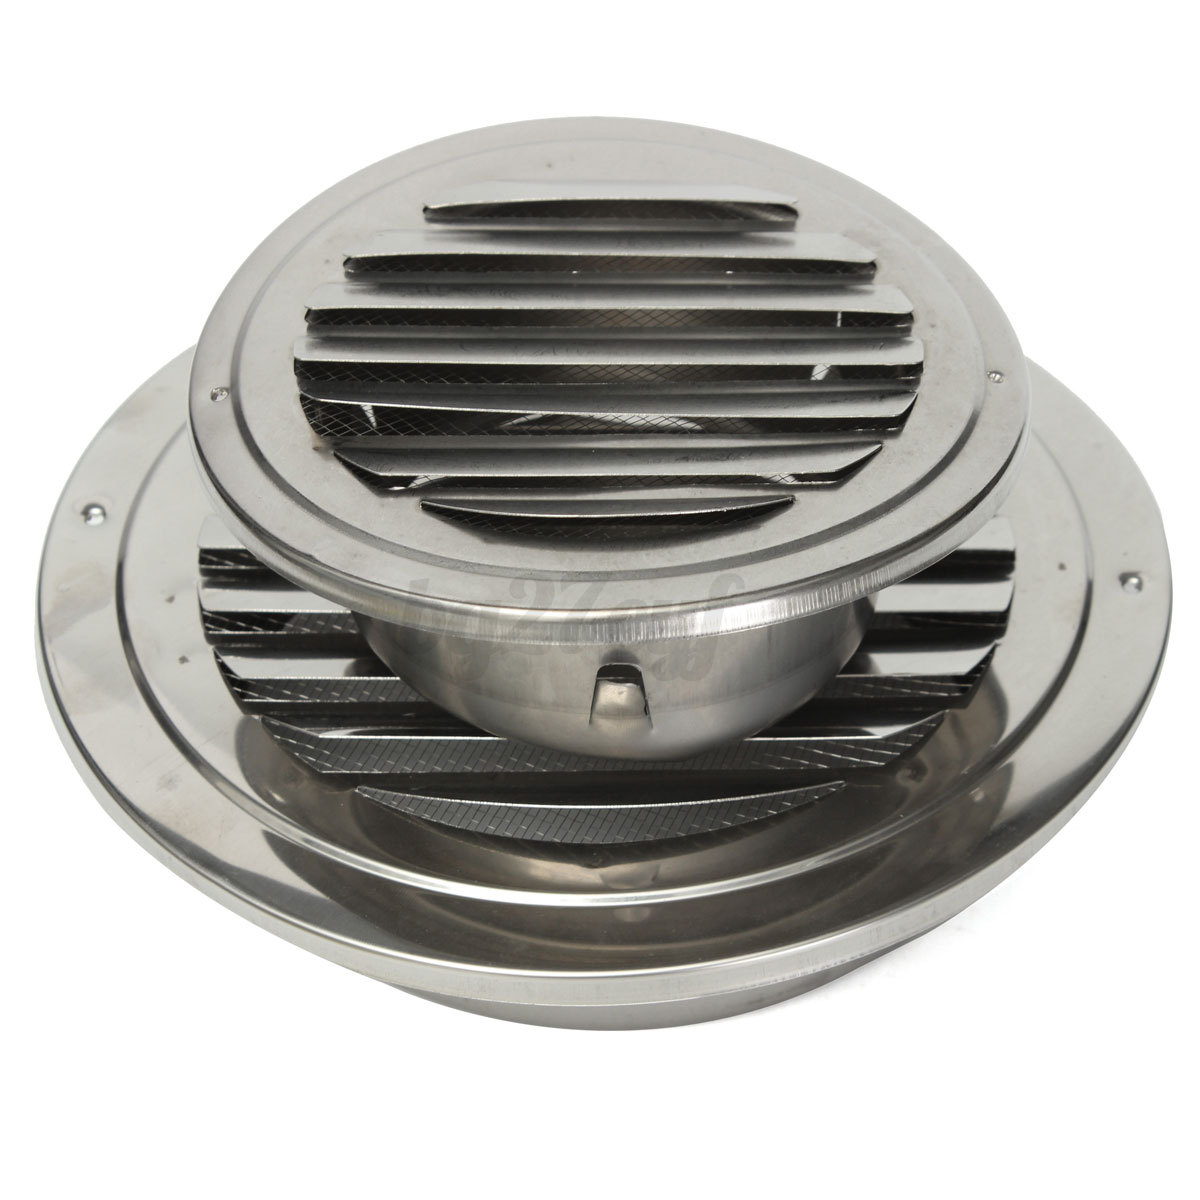 Stainless Steel Silver Circular Air Vent Grille Cover Wall